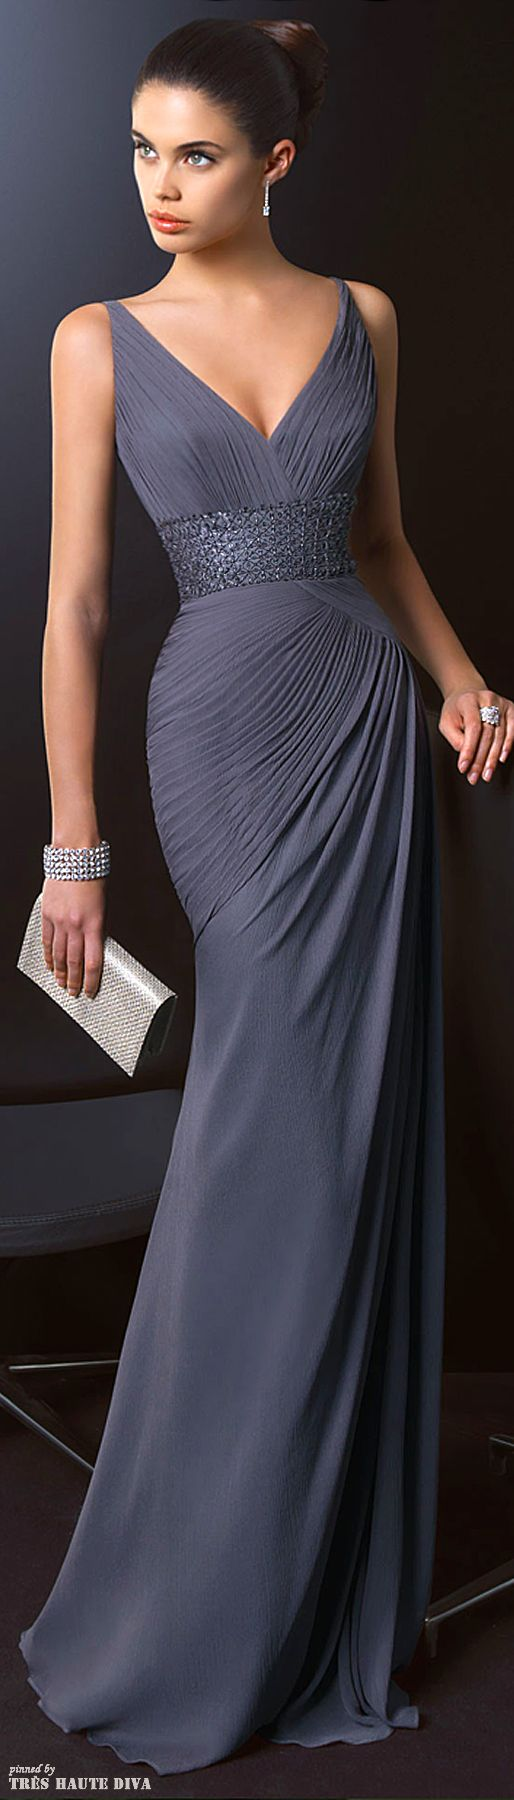 17 Best ideas about Elegant Dresses on Pinterest | Ball dresses Military ball dresses and Long ...